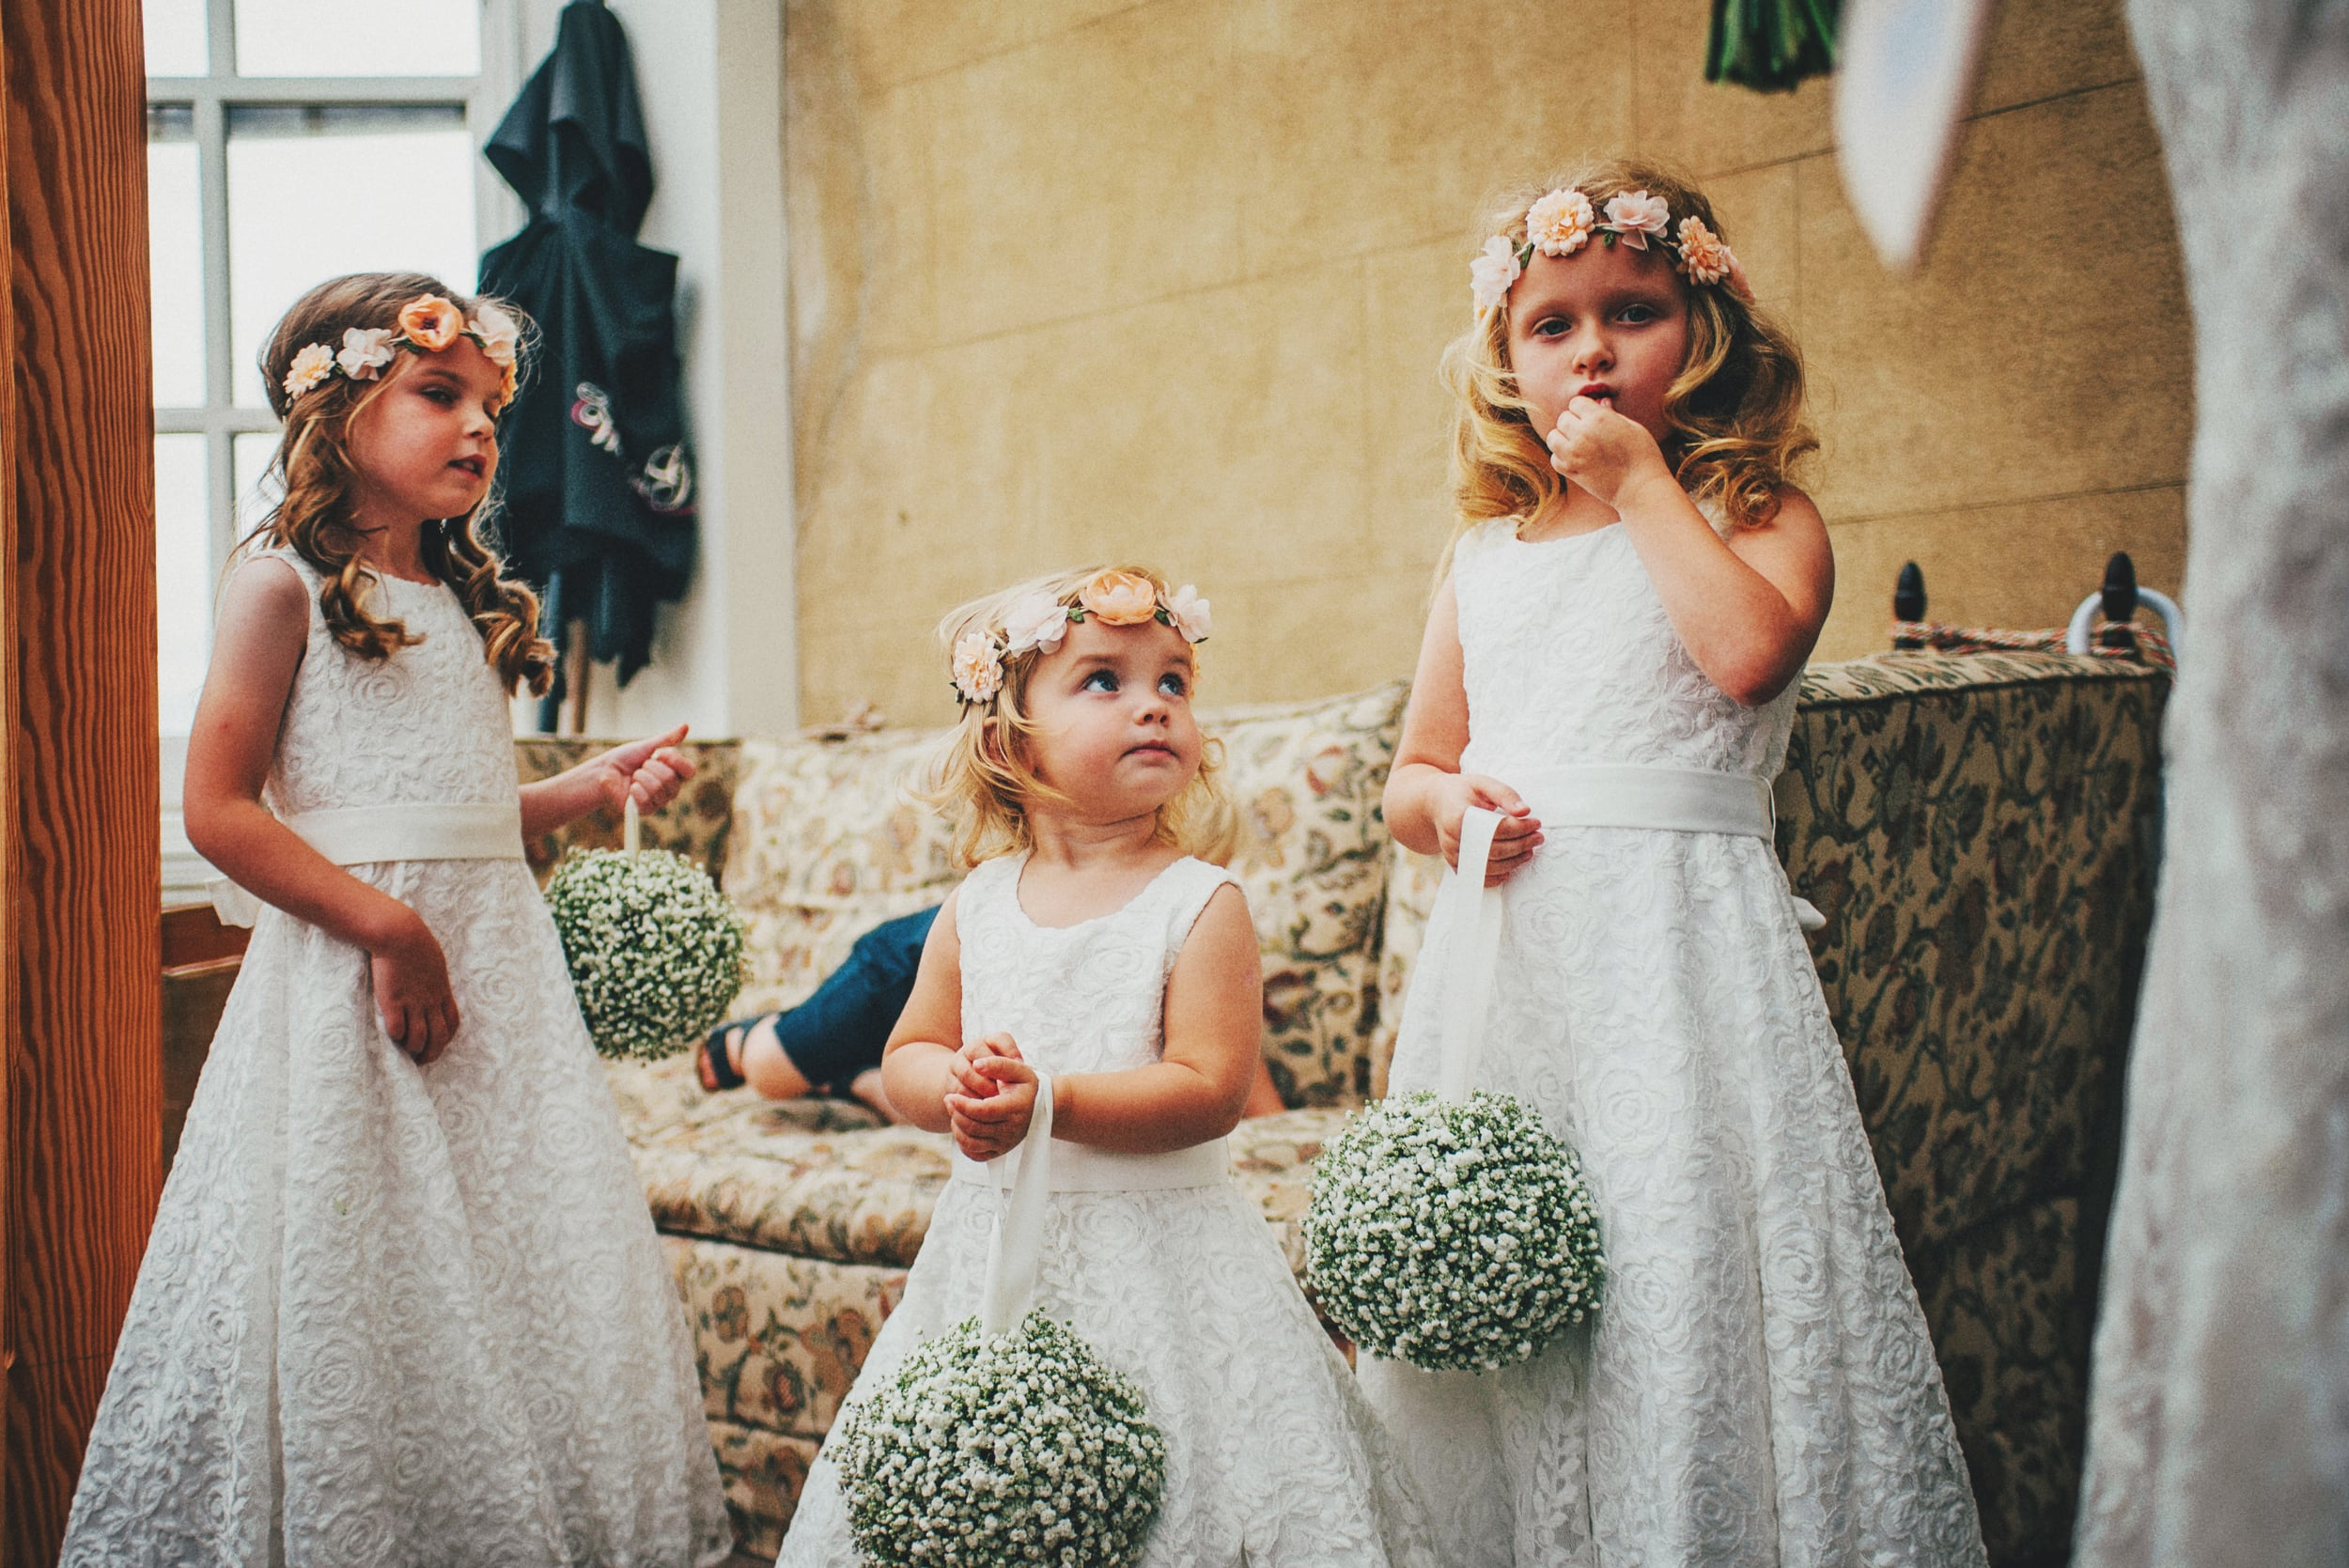 Rustic Flower girls Essex UK Documentary Wedding Photographer